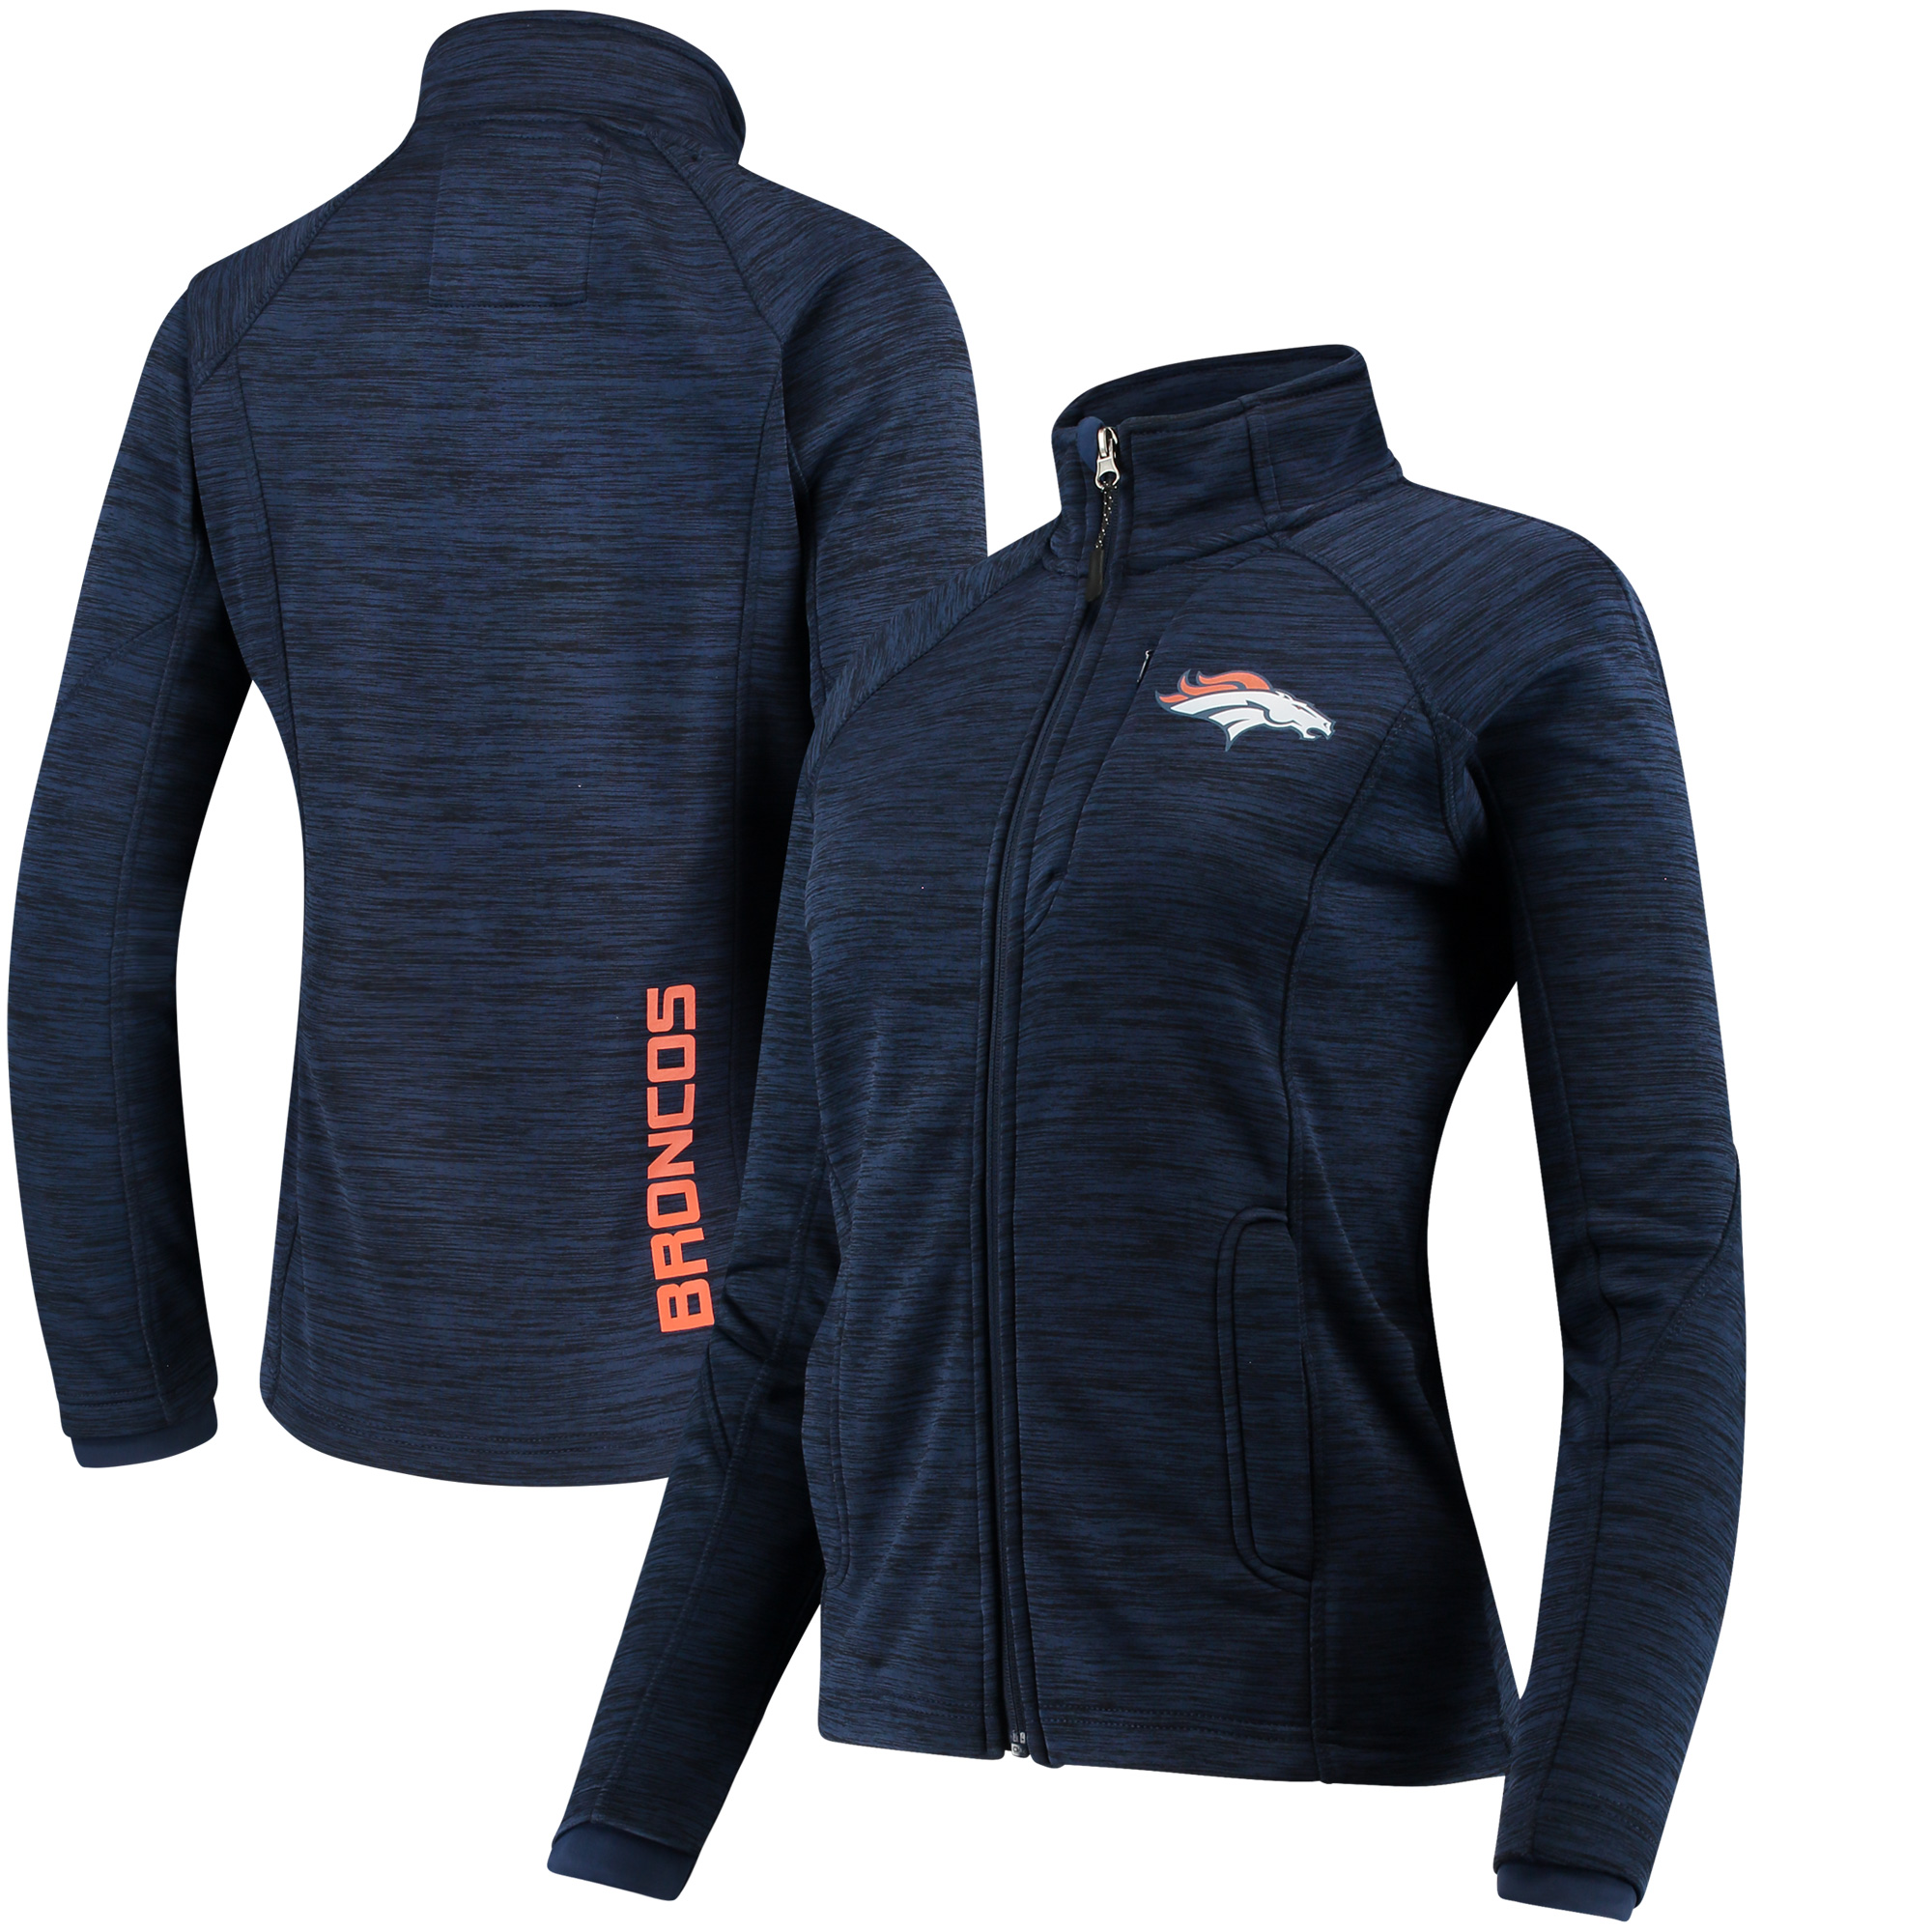 Denver Broncos G-III 4Her by Carl Banks Women's Hand Off Full-Zip Jacket - Navy